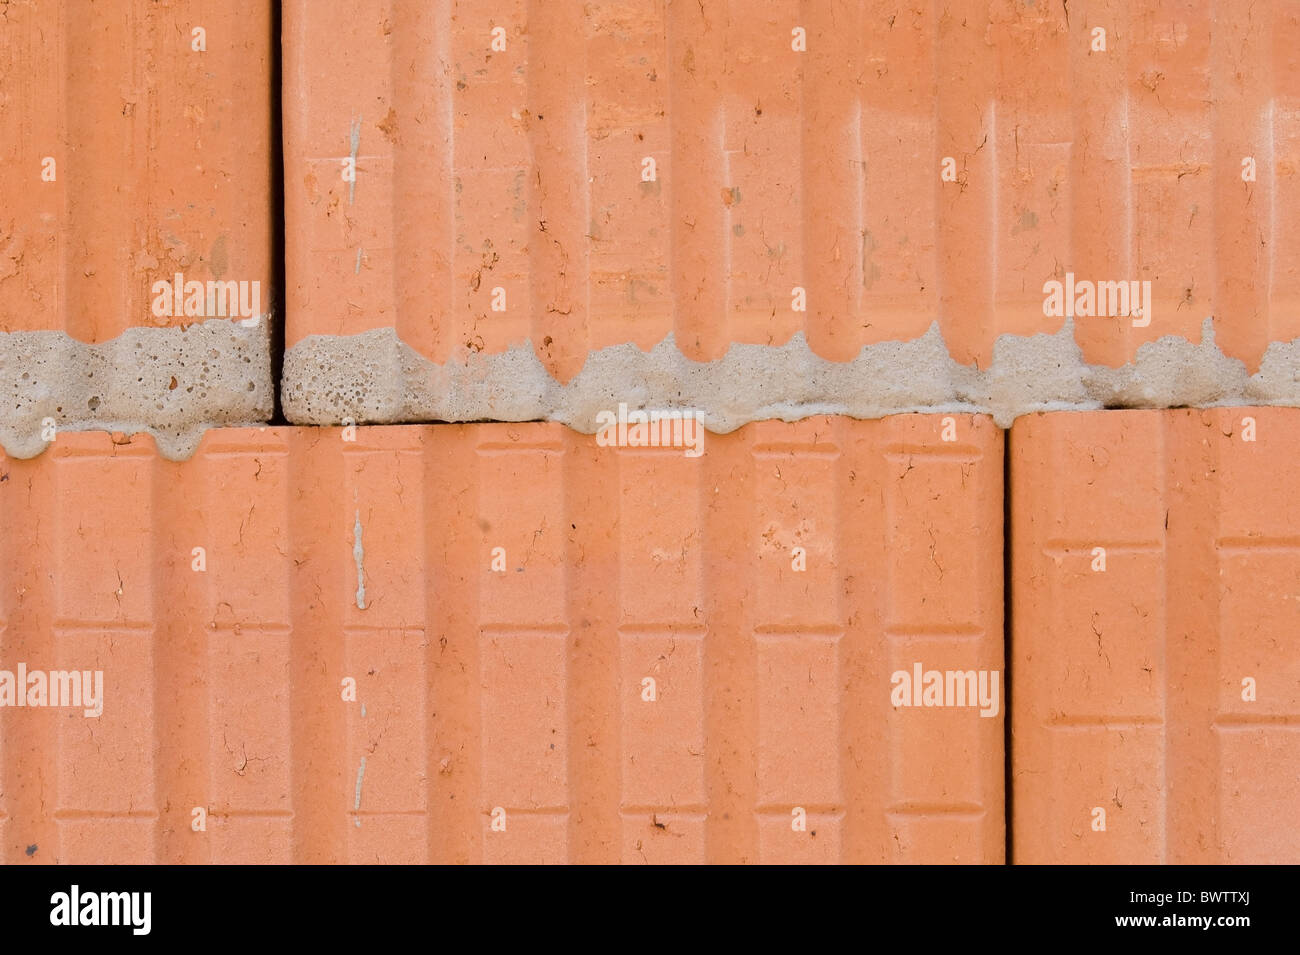 Hollow brick masonry - Stock Image